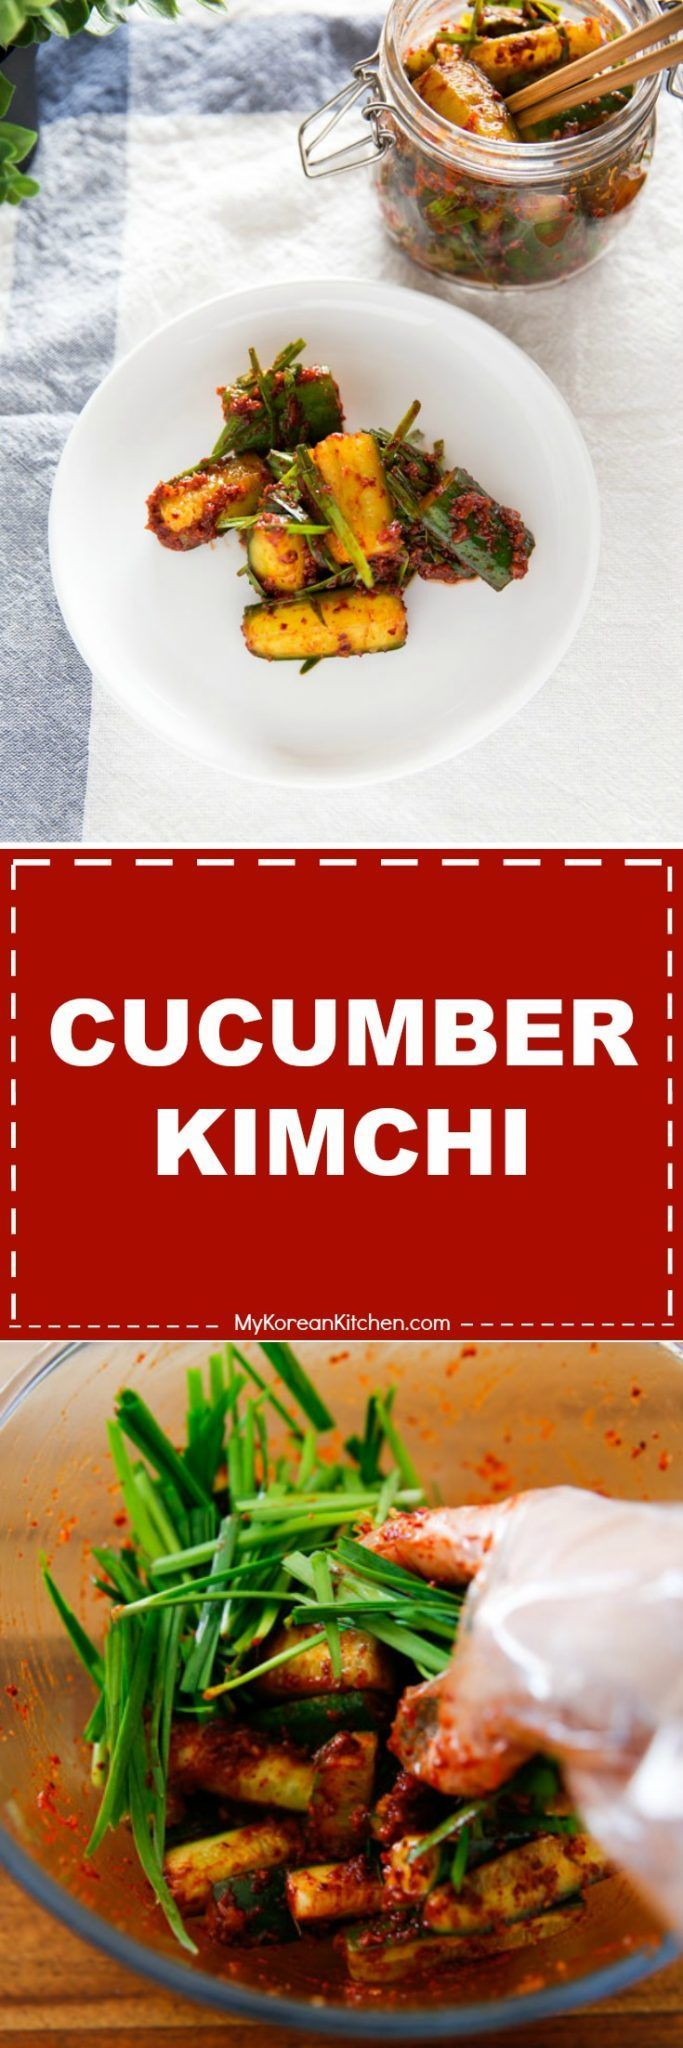 Cucumber Kimchi (Oi Kimchi). It's light, crunchy and flavorful. It's a perfect summer kimchi! | MyKoreanKitchen.com